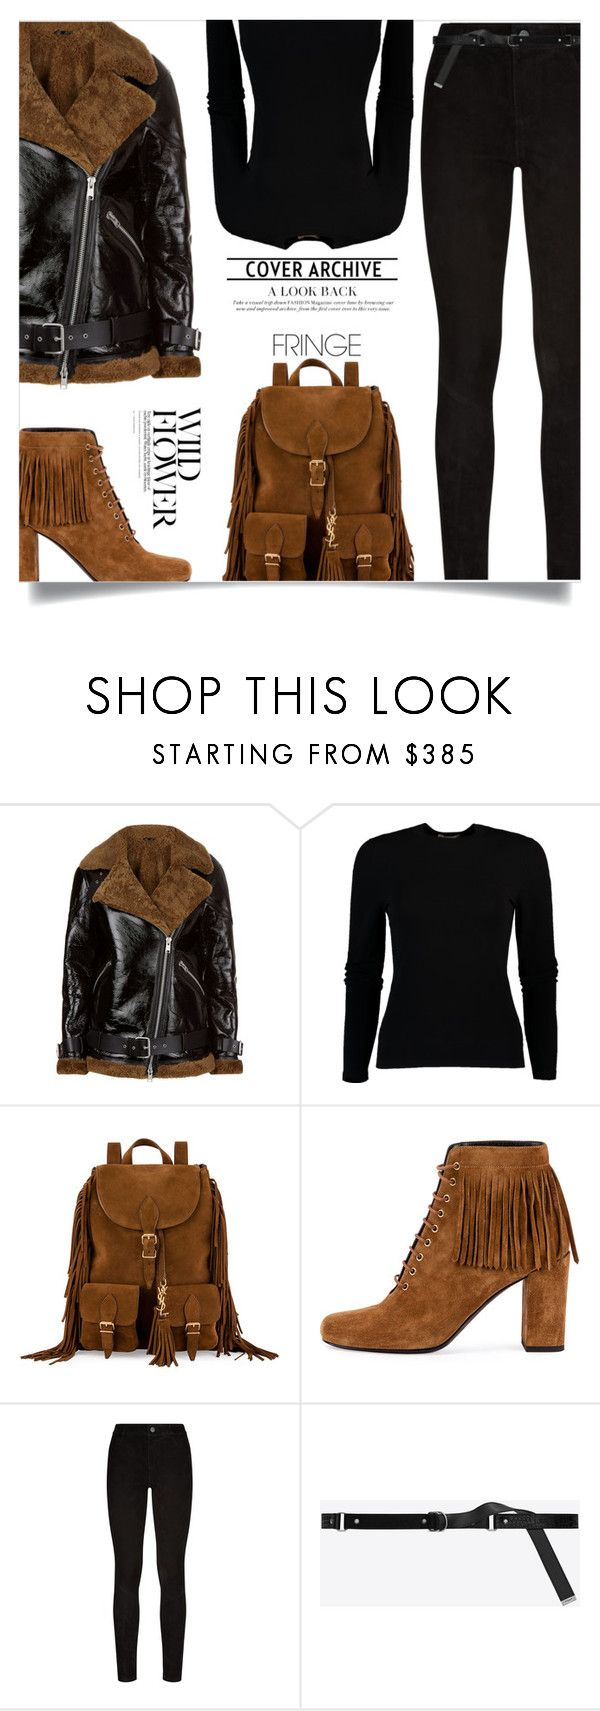 """""""Shimmy Shimmy: Fringe"""" by tina-abbara ❤ liked on Polyvore featuring AllSaints, Michael Kors, Yves Saint Laurent and Paige Denim"""